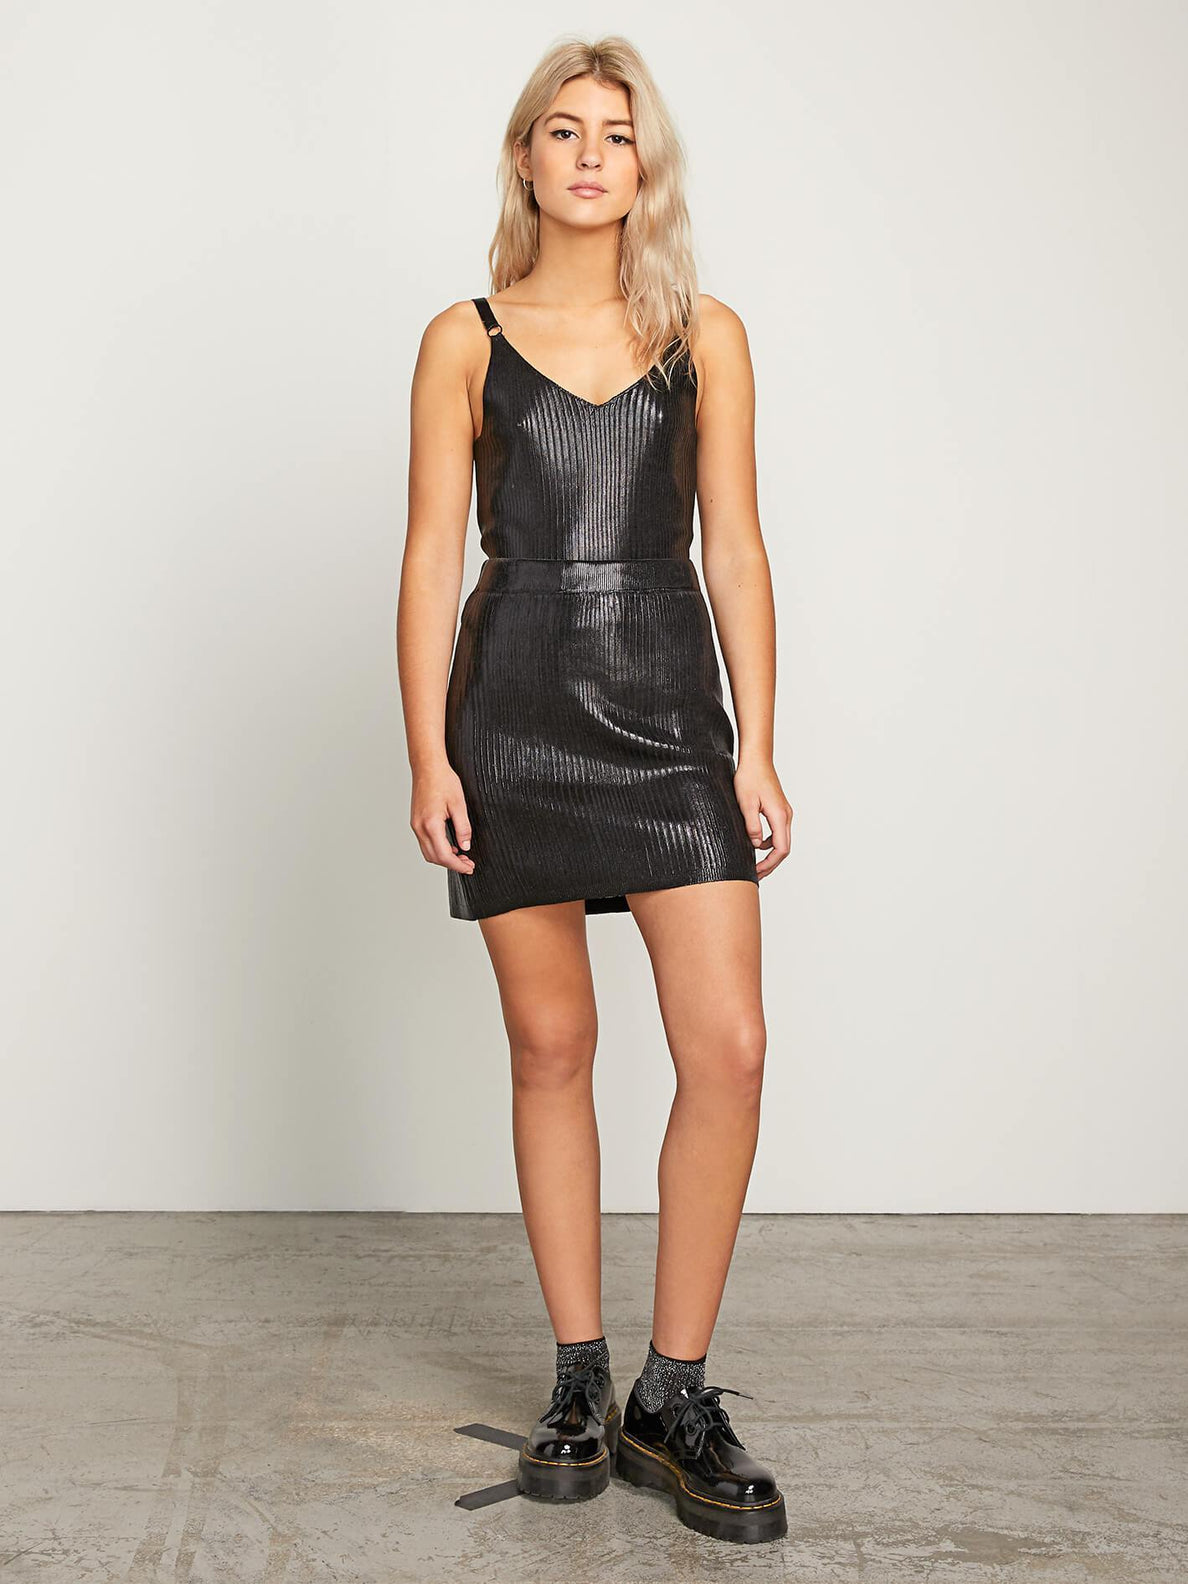 Hey Slick Skirt - Black